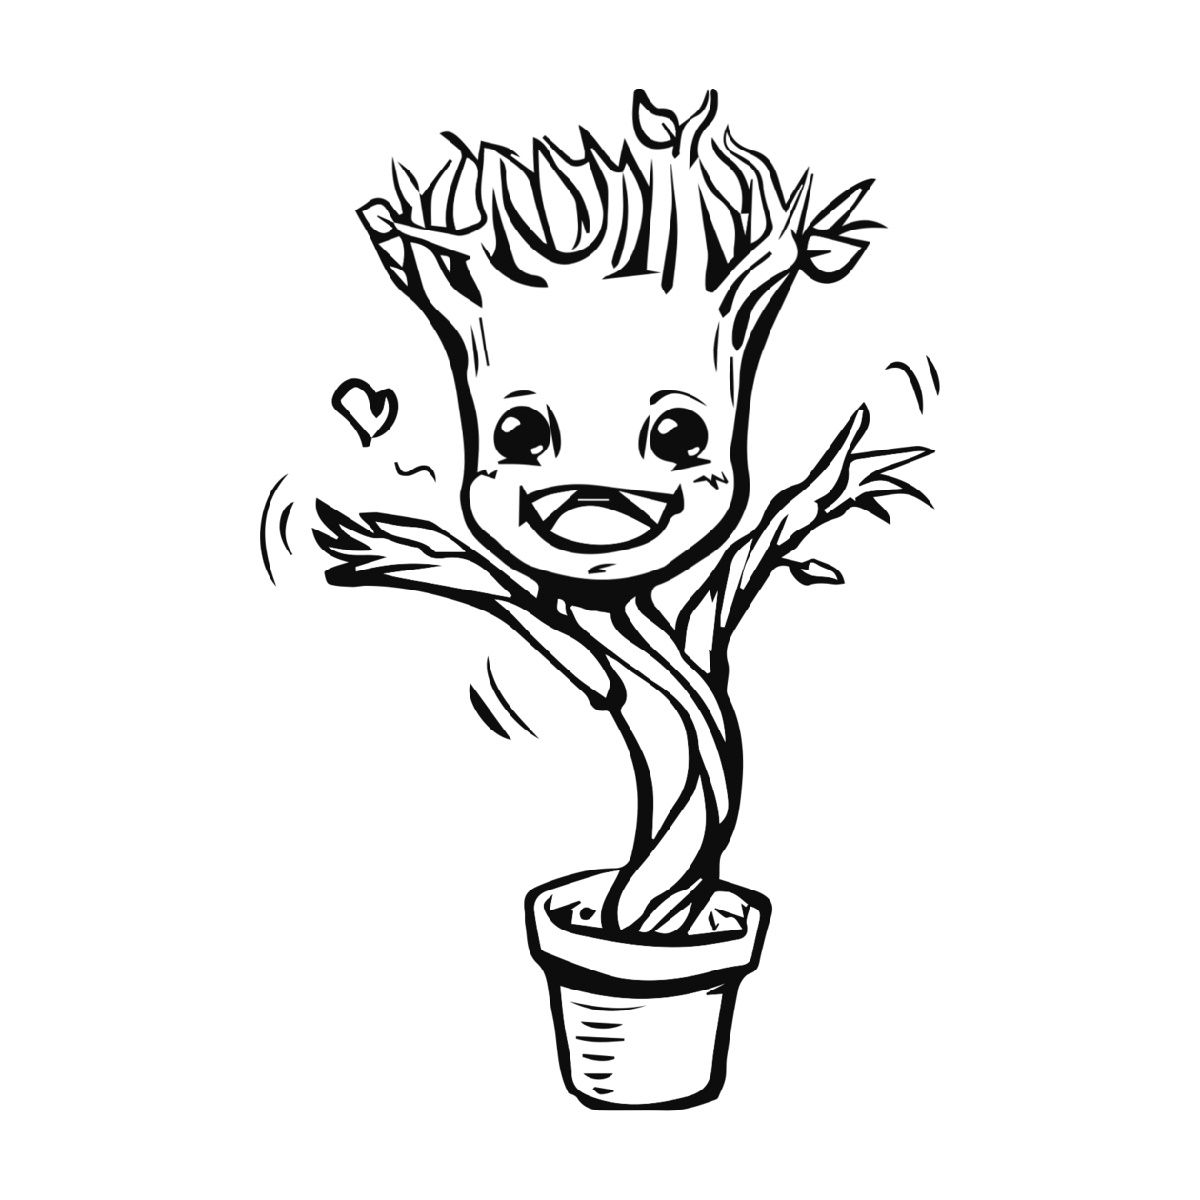 Guardians of the Galaxy coloring page | Free Printable Coloring Pages | 1200x1200